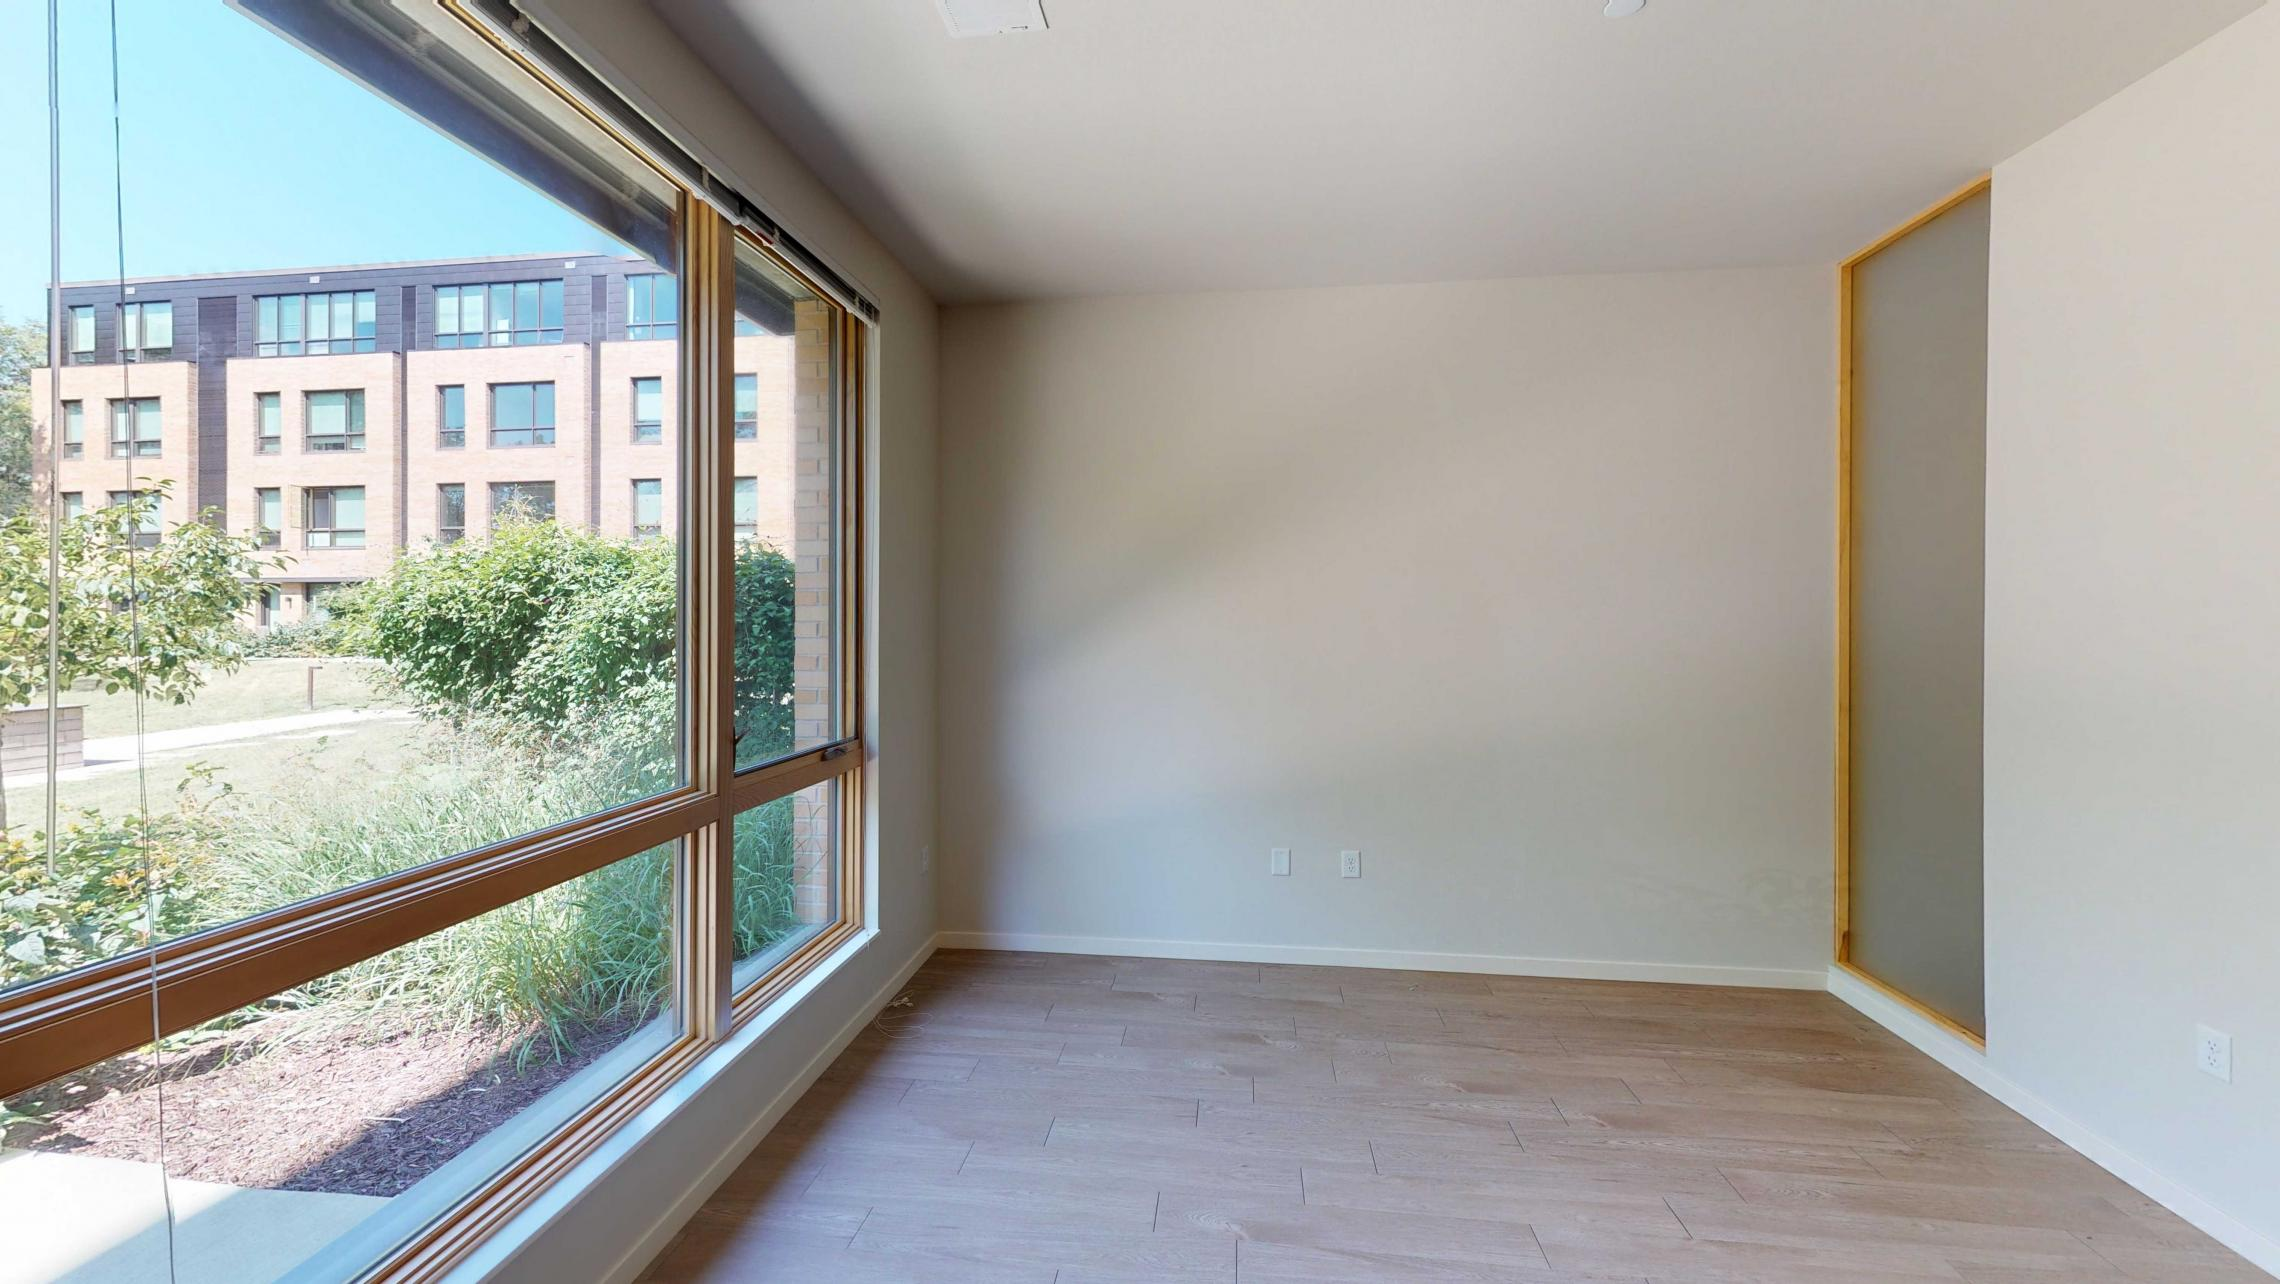 Quarter-Row-Yards-Apartment-108-One-Bedroom-Patio-Modern-Upscale-Fitness-Lounge-Courtyard-Downtown-Madison-View-Bike-Trail-Lifestyle-Lake-Monona